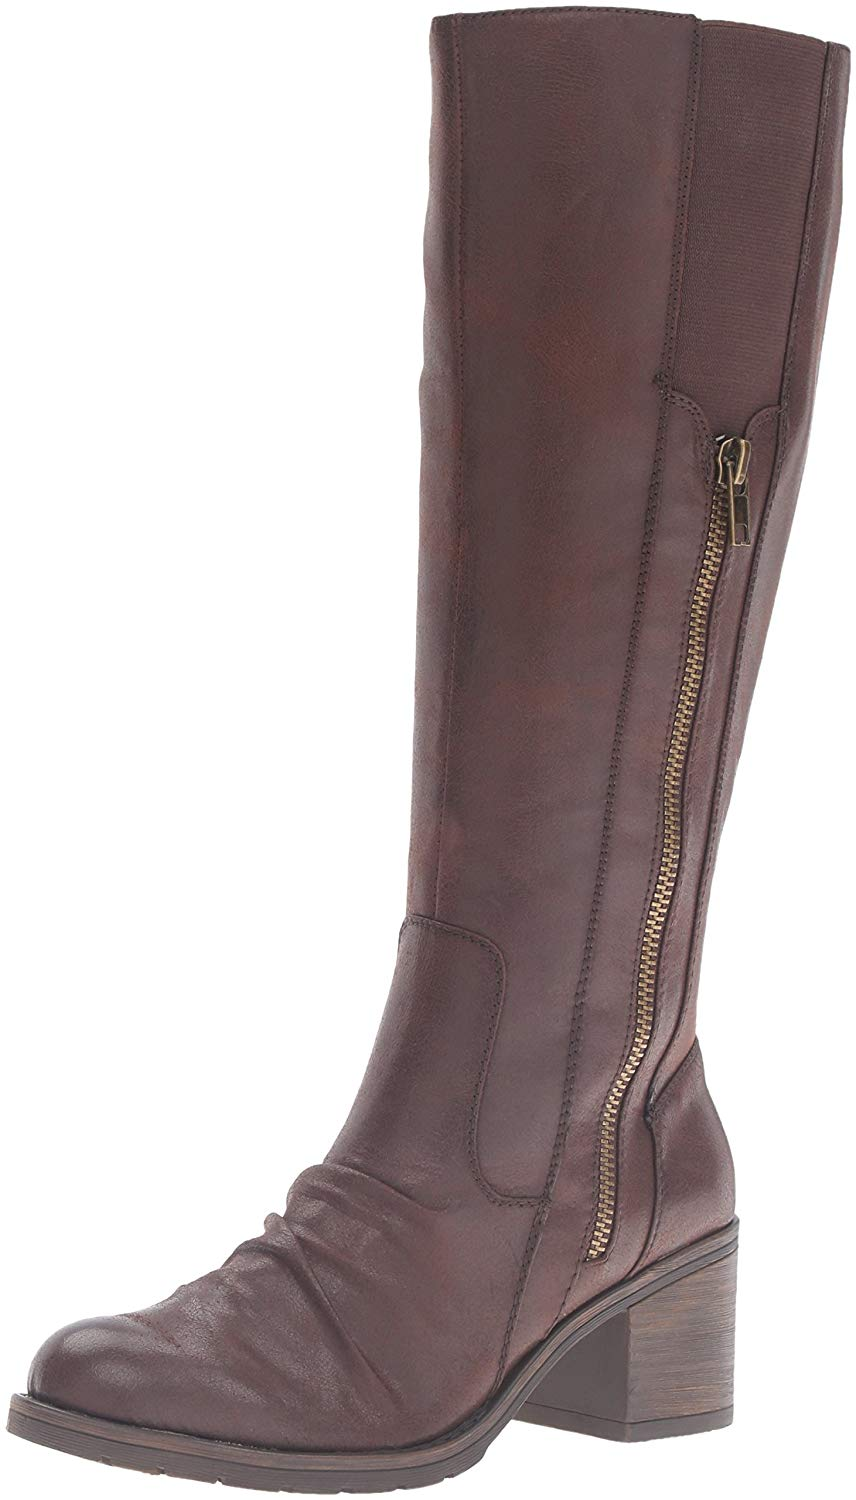 BareTraps Women's Bt Dallia Riding Boot